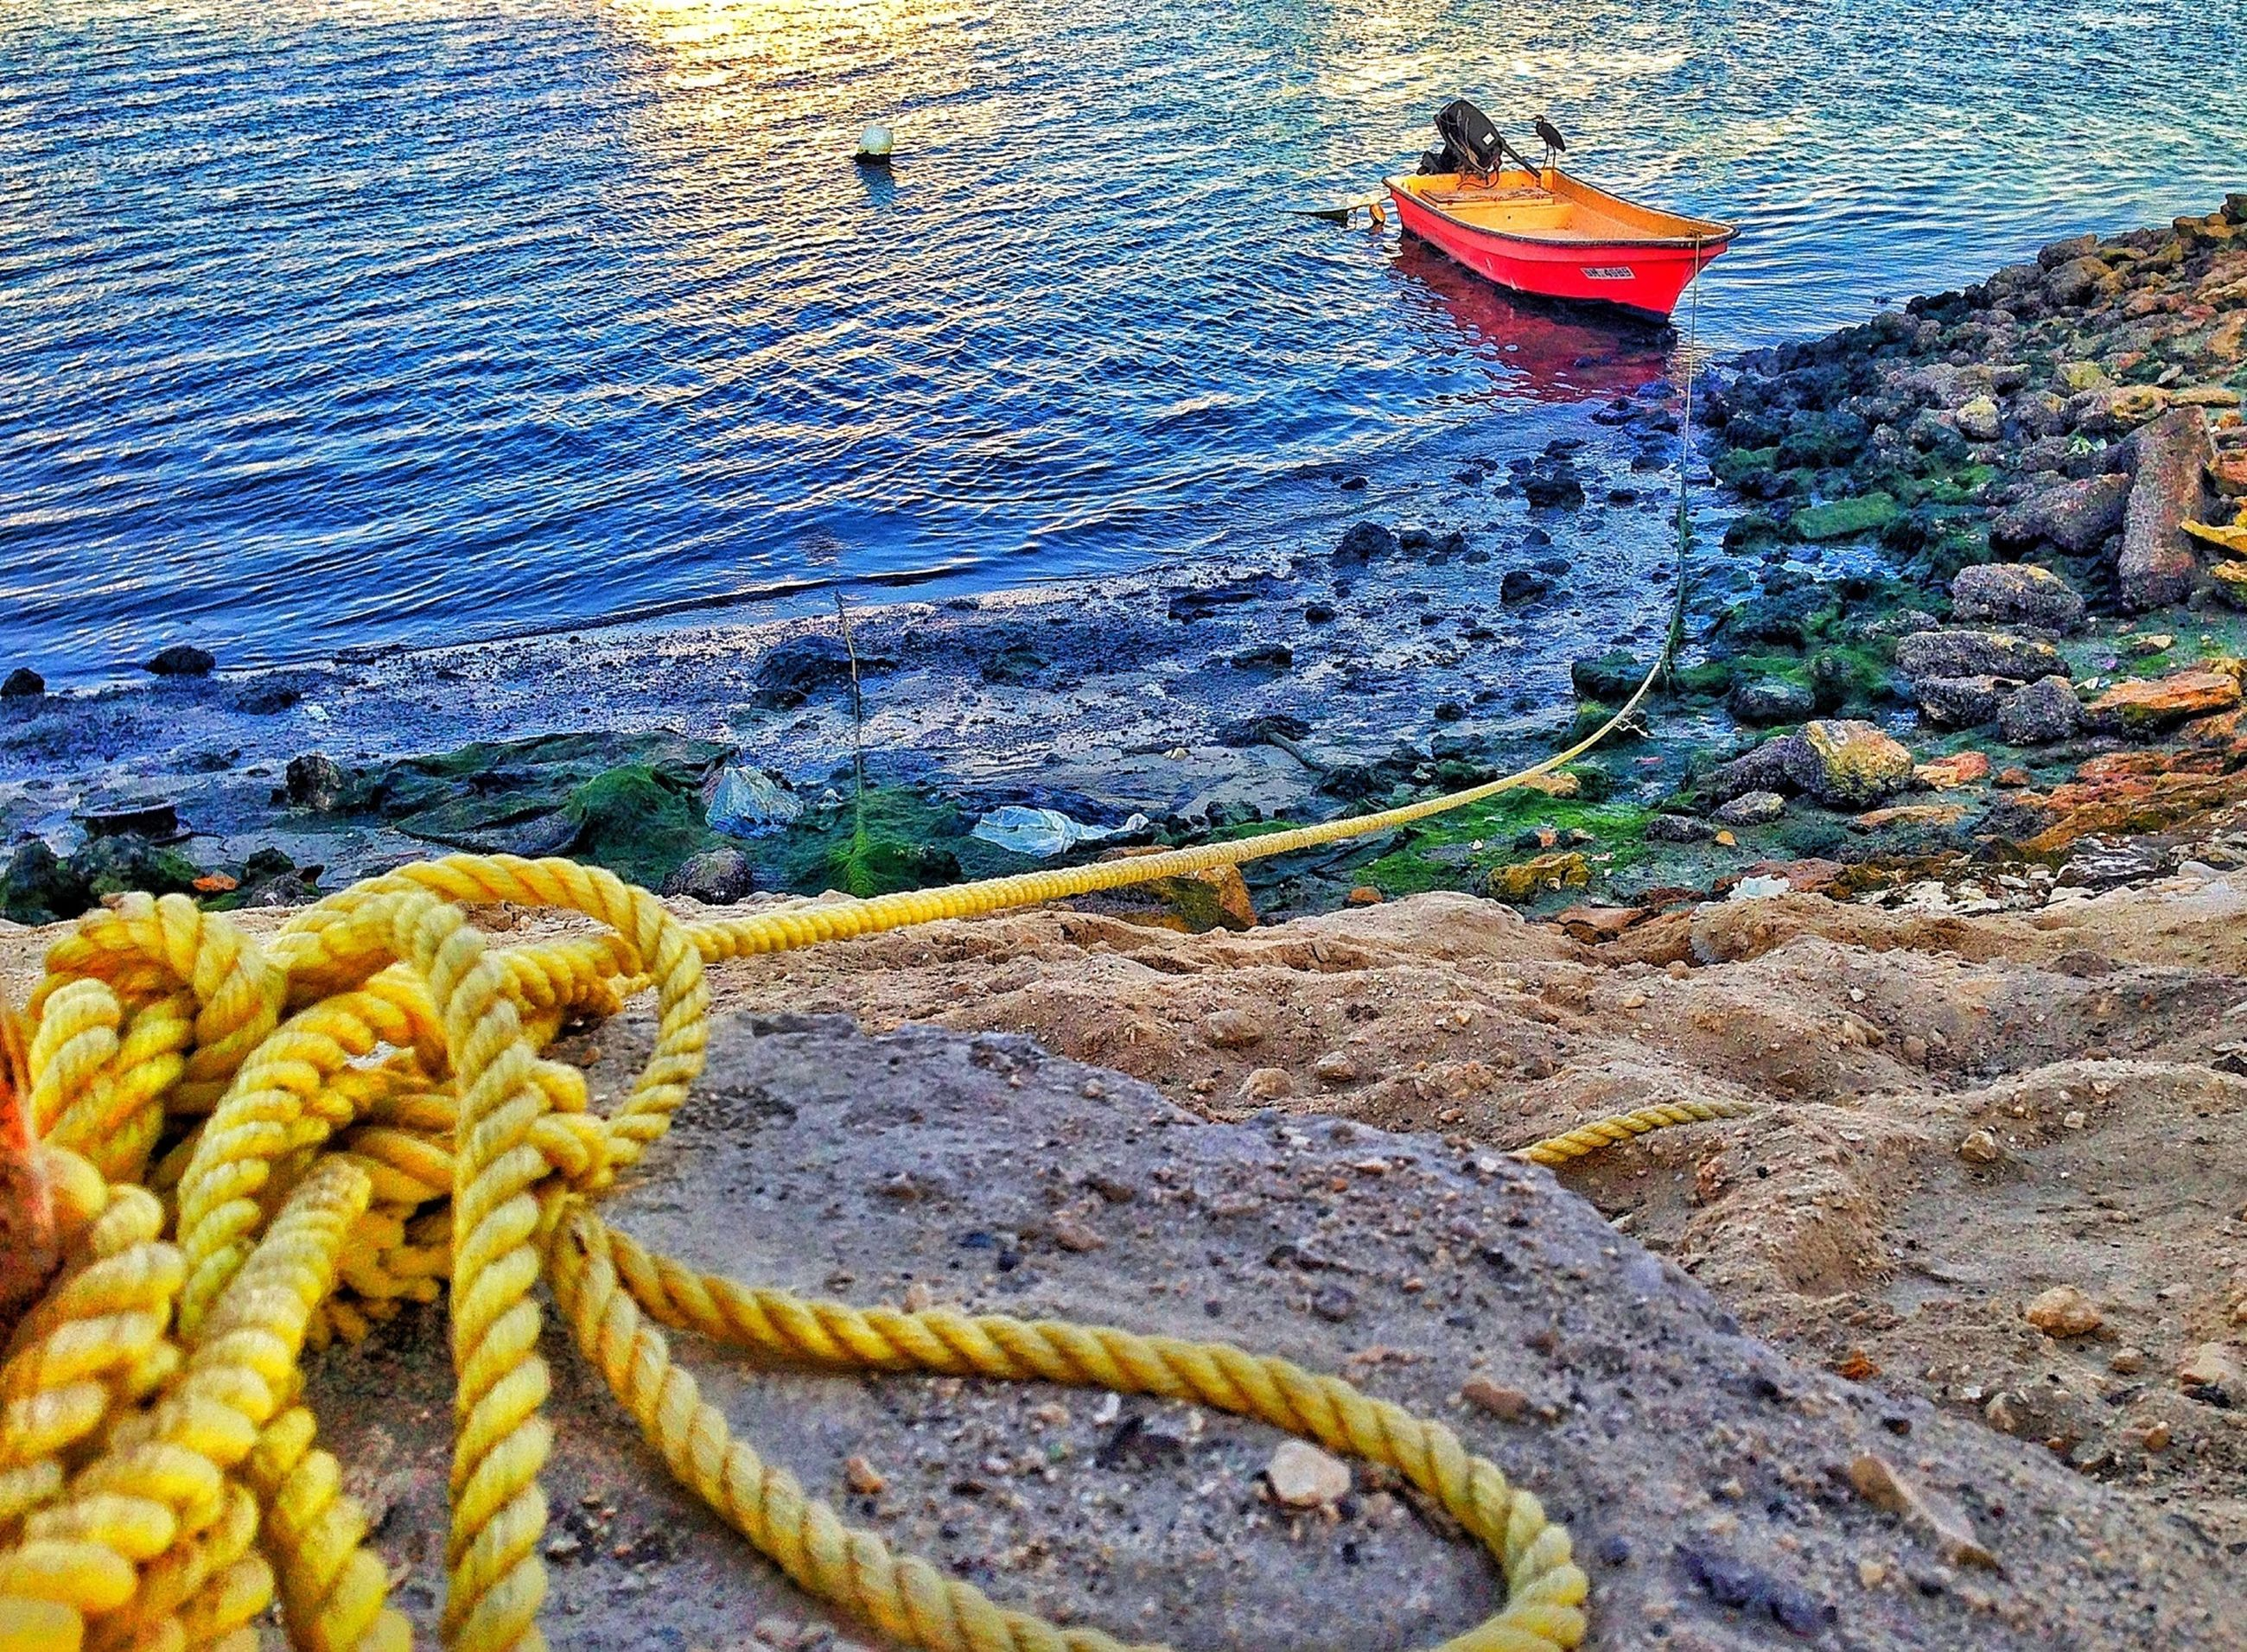 water, transportation, high angle view, mode of transport, yellow, rope, nautical vessel, sea, boat, day, outdoors, no people, fishing industry, rock - object, animal themes, sunlight, nature, tied up, fishing net, moored